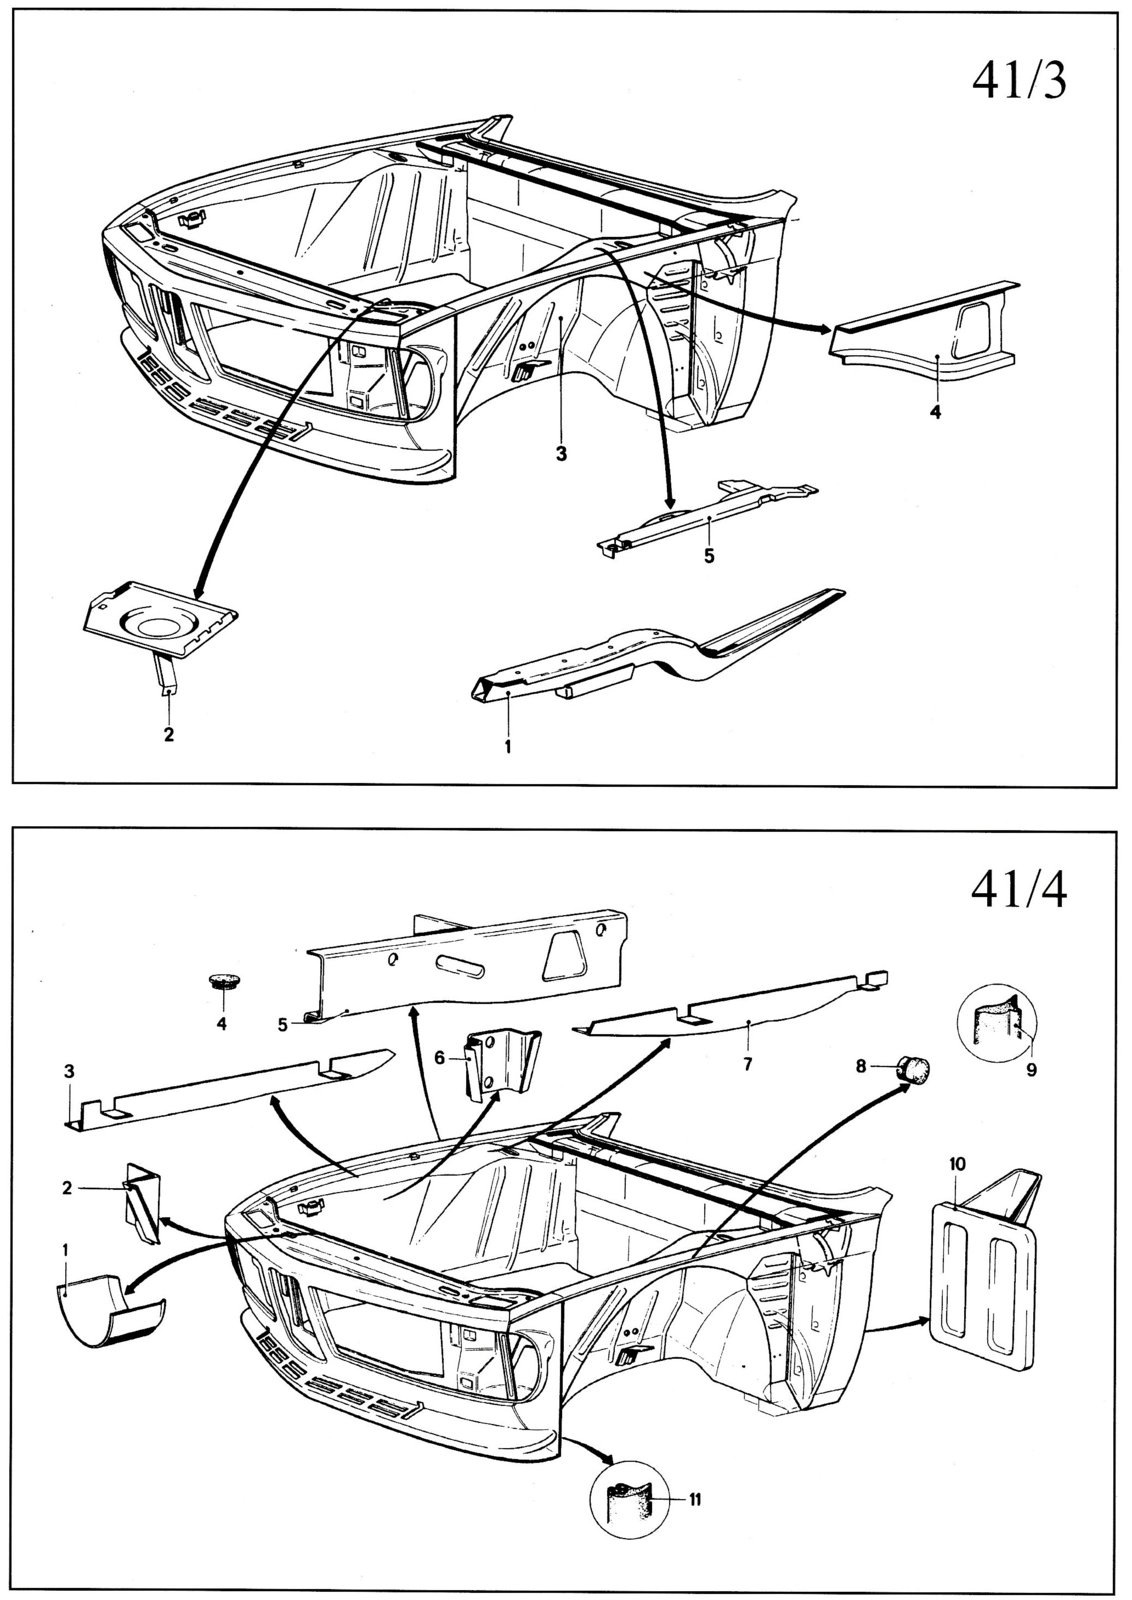 Front assembly diagram 2.jpg